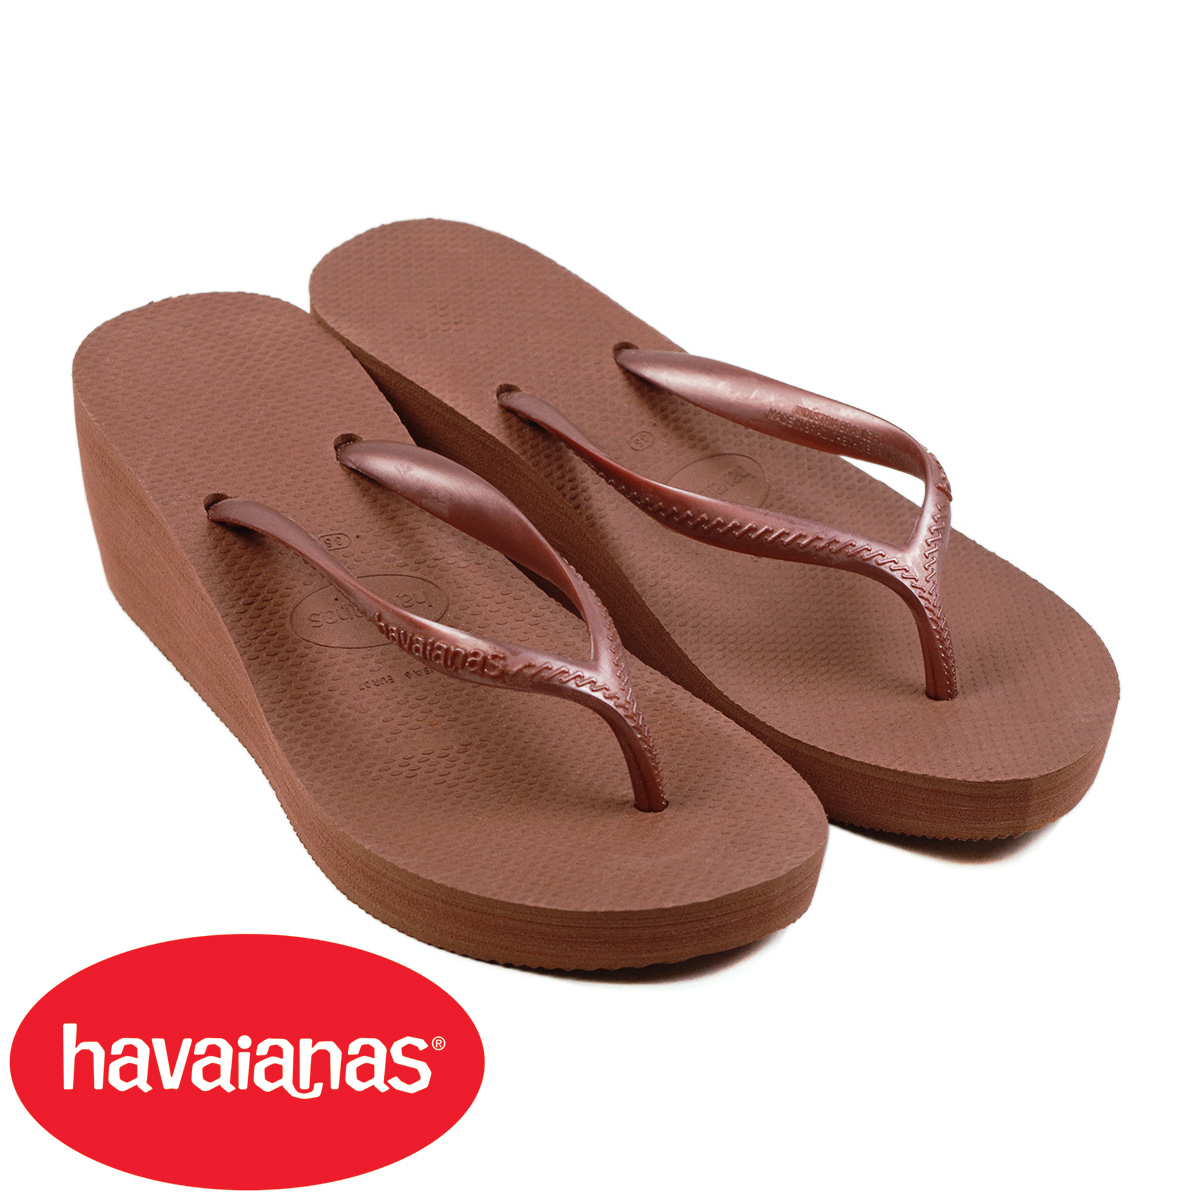 b44d5430eae Hawaiian announcers havaianas Lady s beach sandal high style bronze nude  (for the HIGH FASHION B sun wedge sole thickness bottom woman)